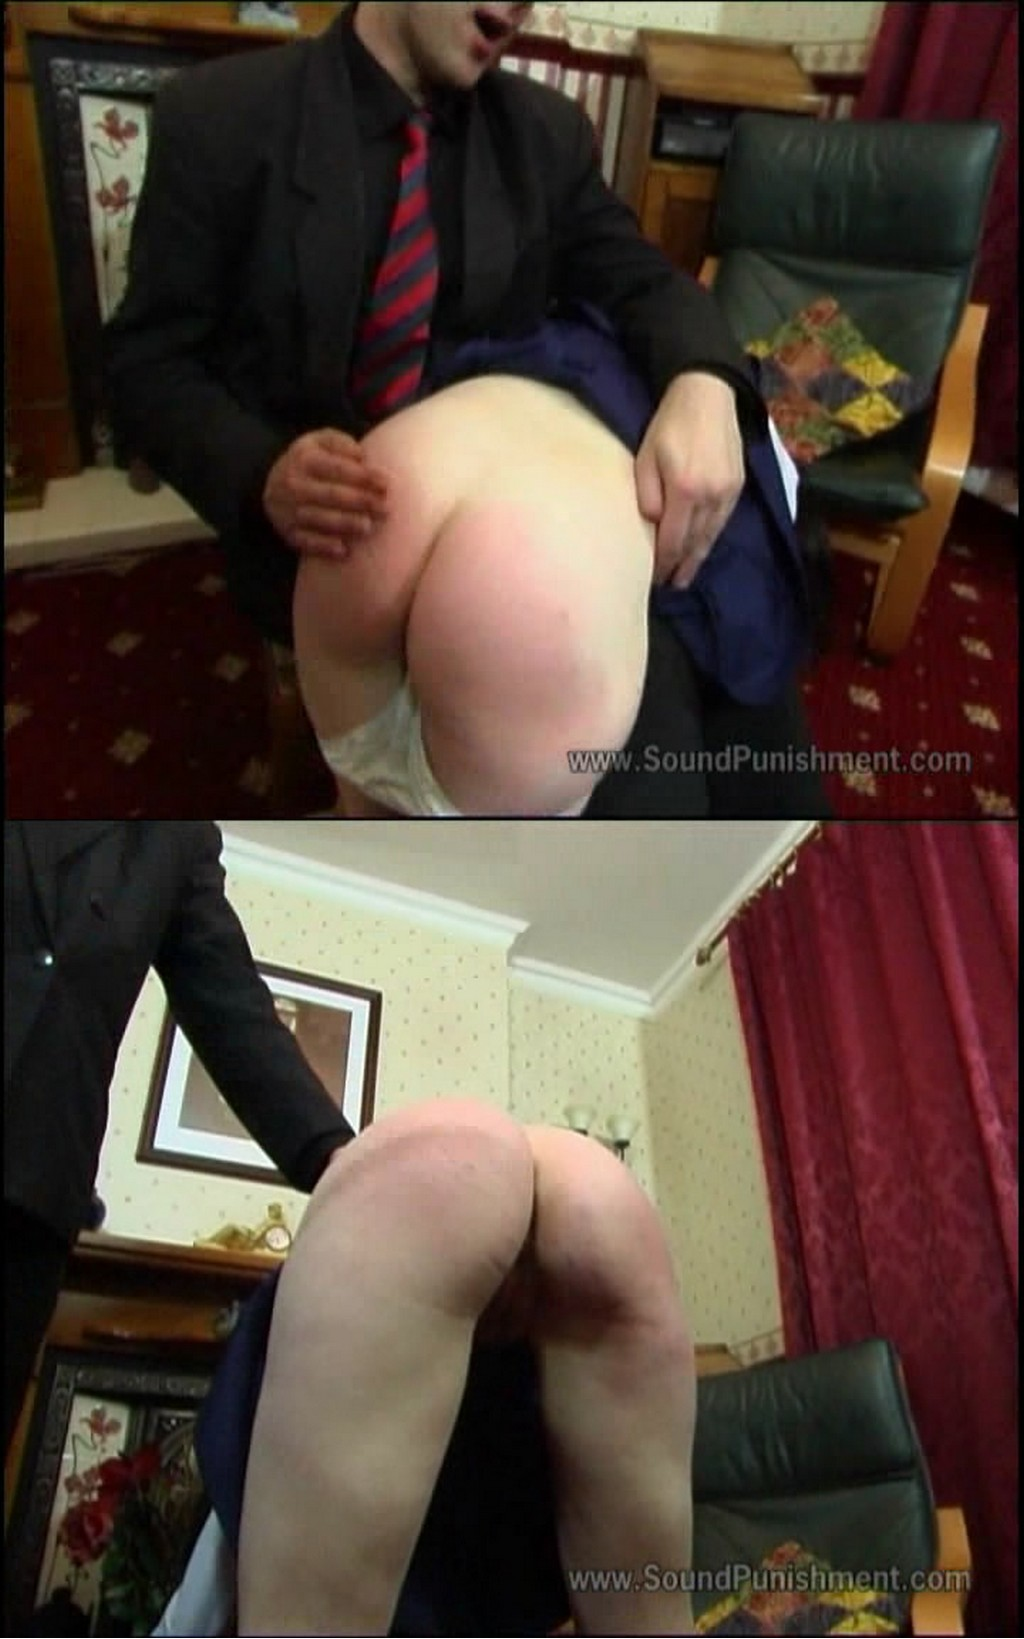 Sound Punishment – MP4/SD – Lucy Baxter – Lucy Baxter Caned For Assess